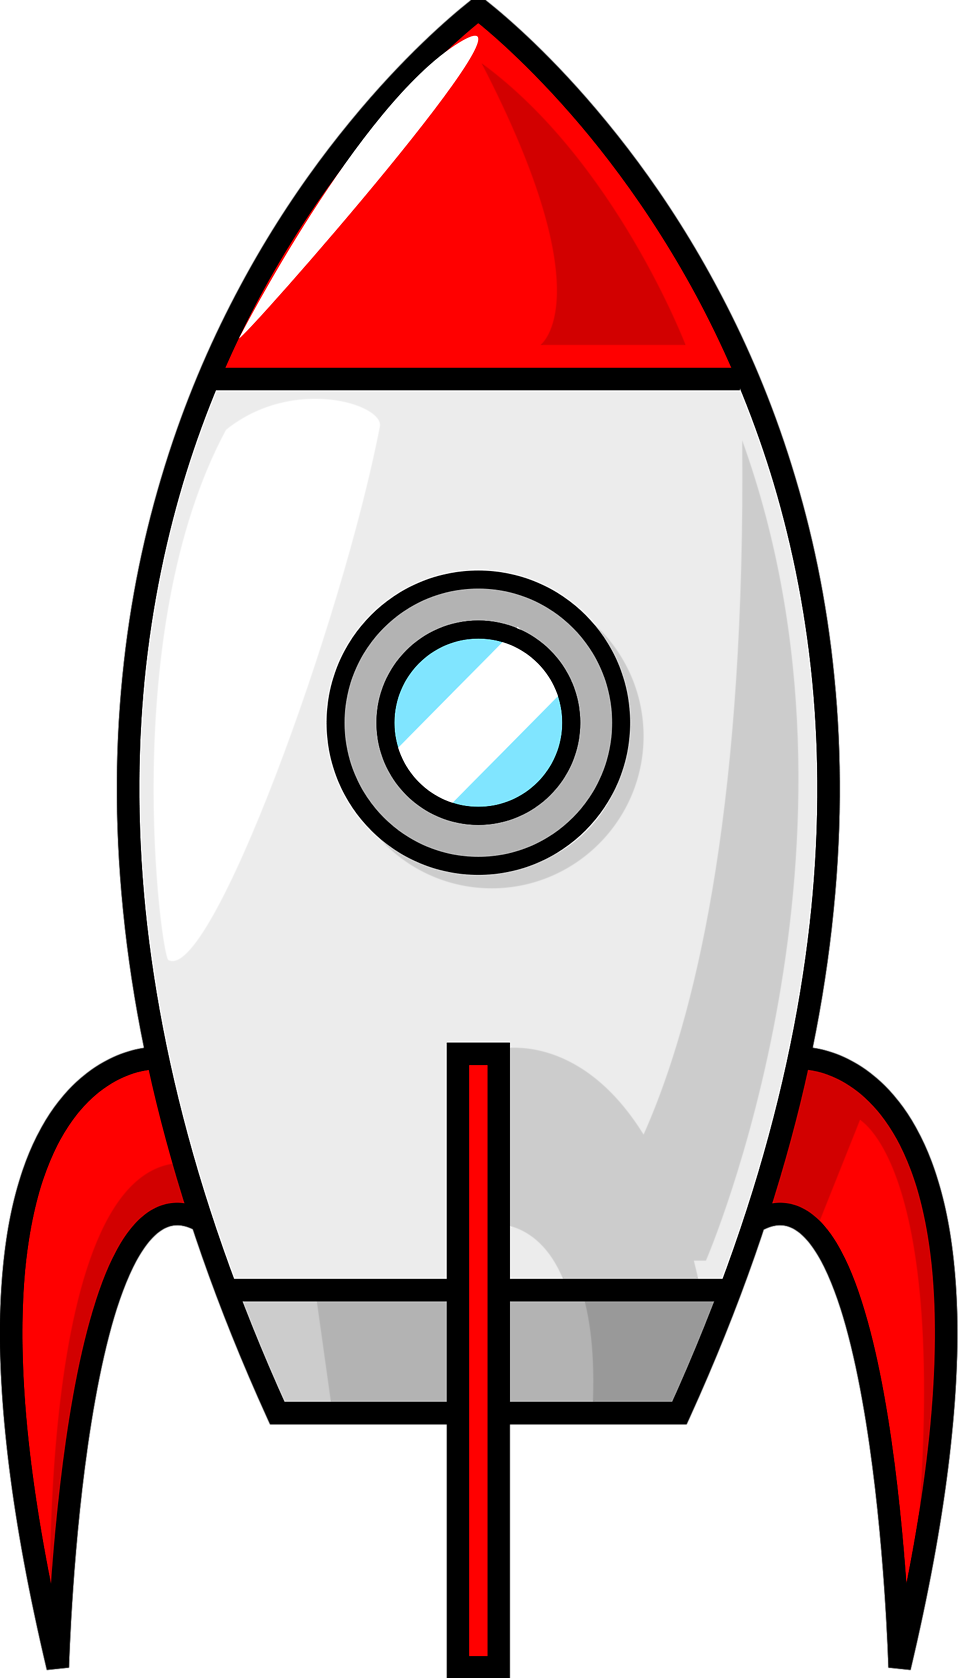 Spaceship clipart red. Cartoon rocketship shop of